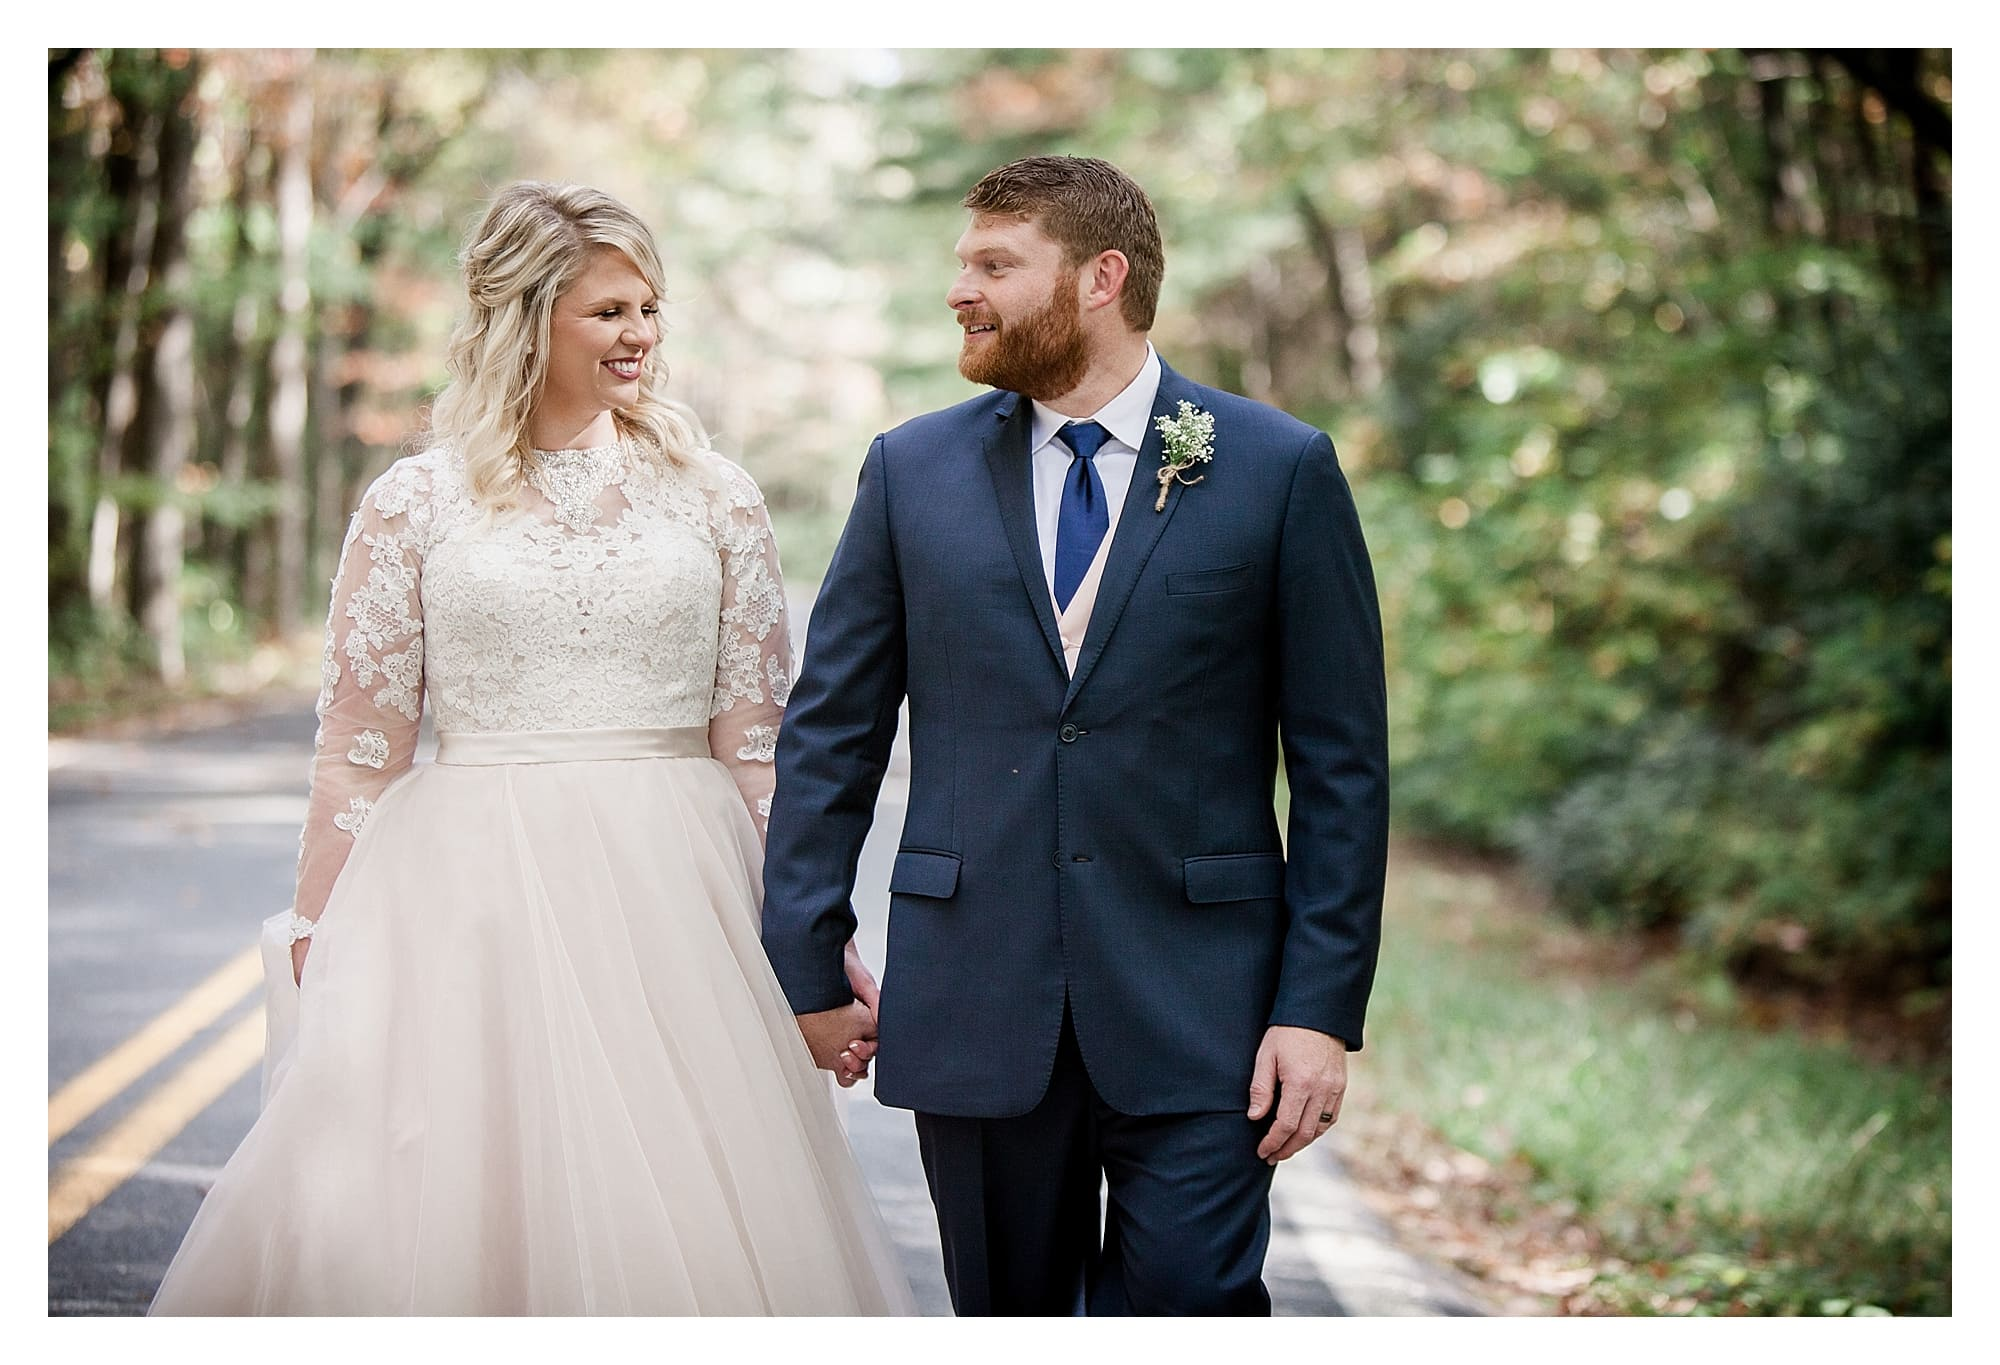 Bride and groom in road with fall foliage